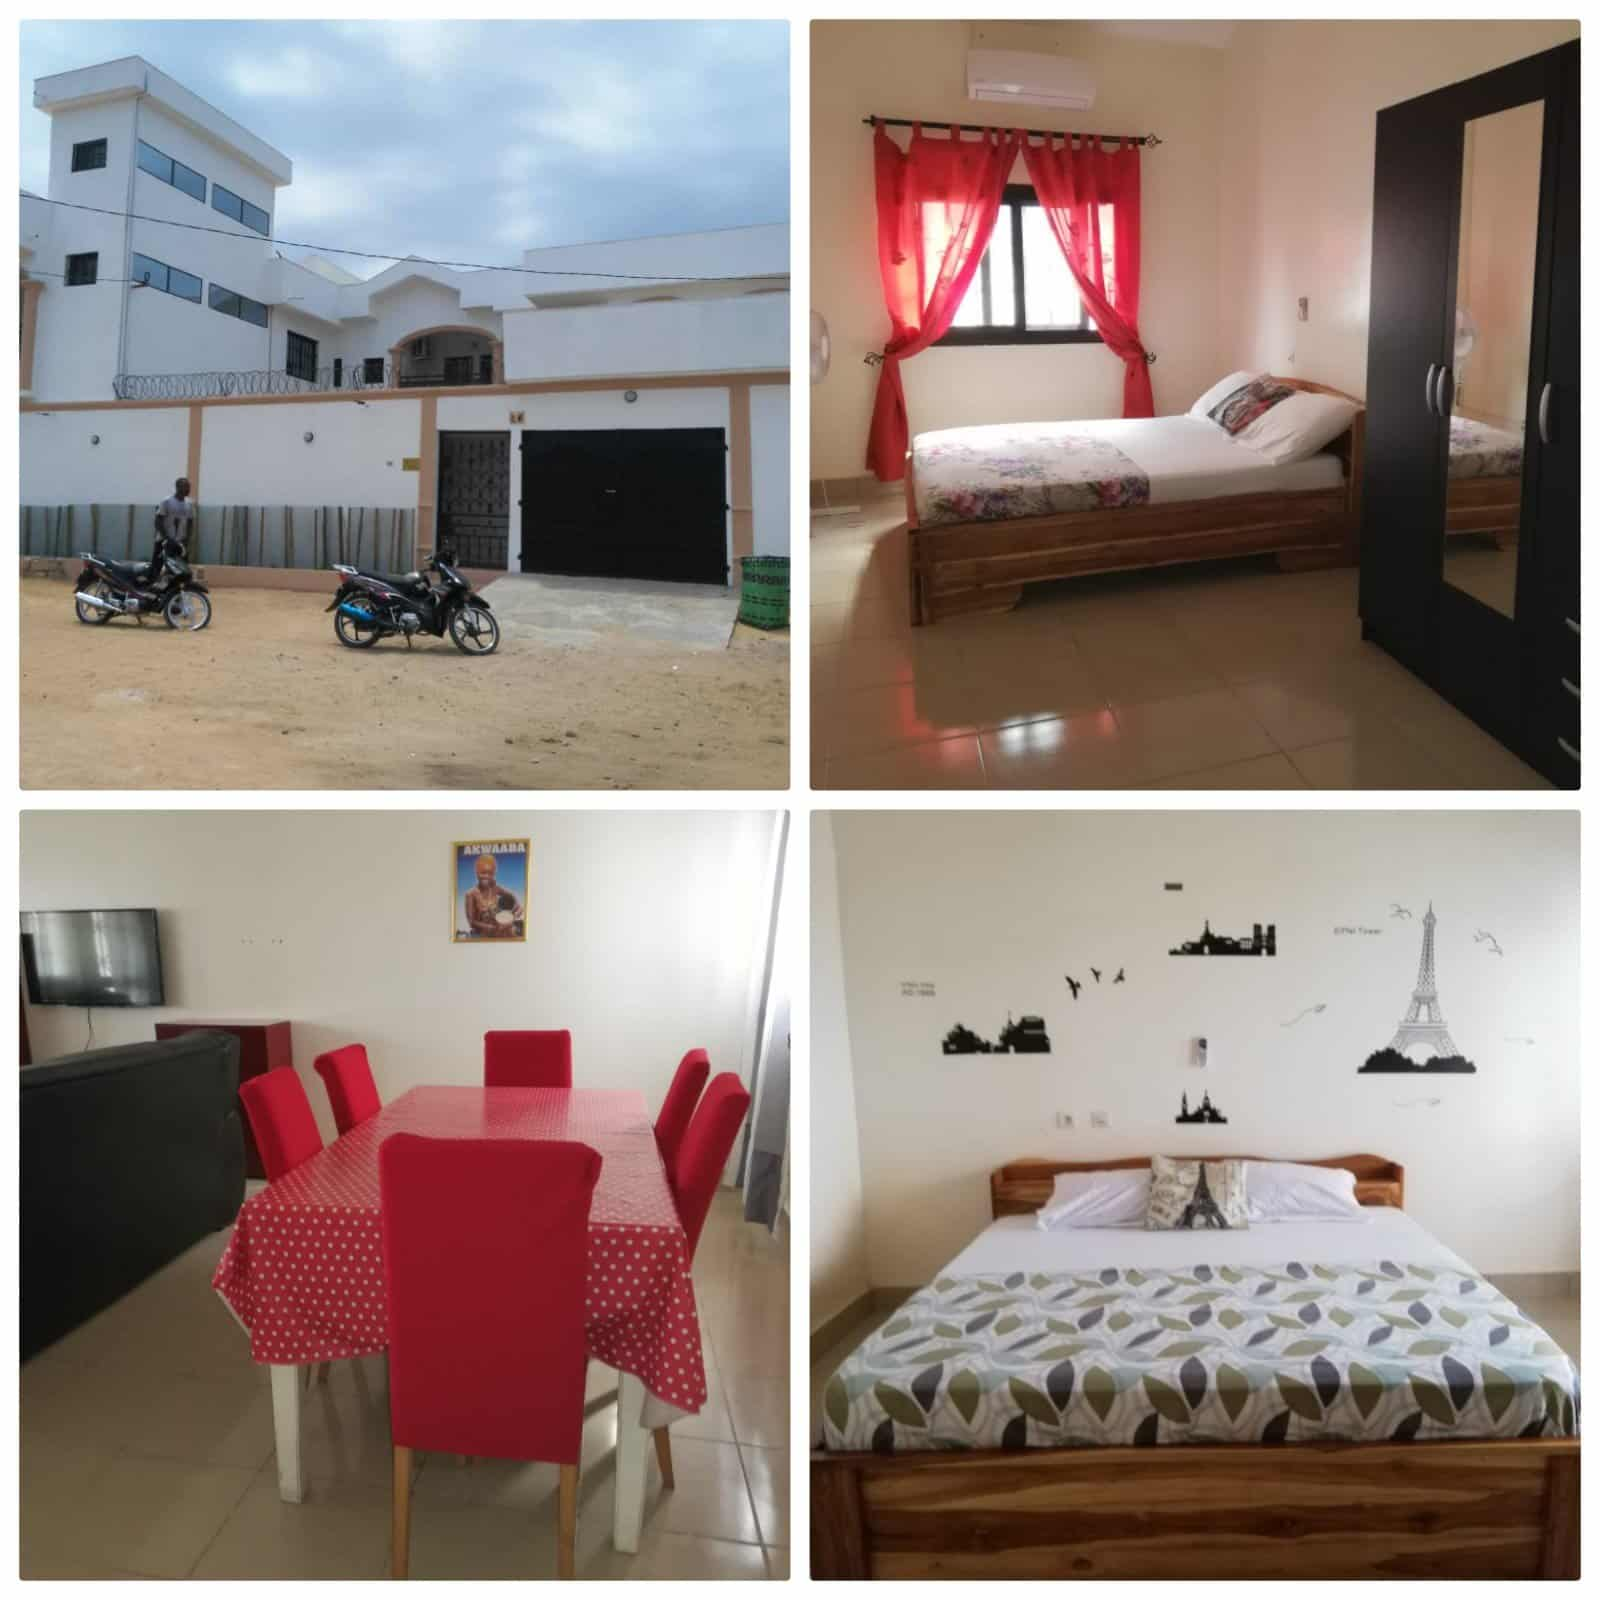 Superb well furnished apartment for rent in kpogan, Lome